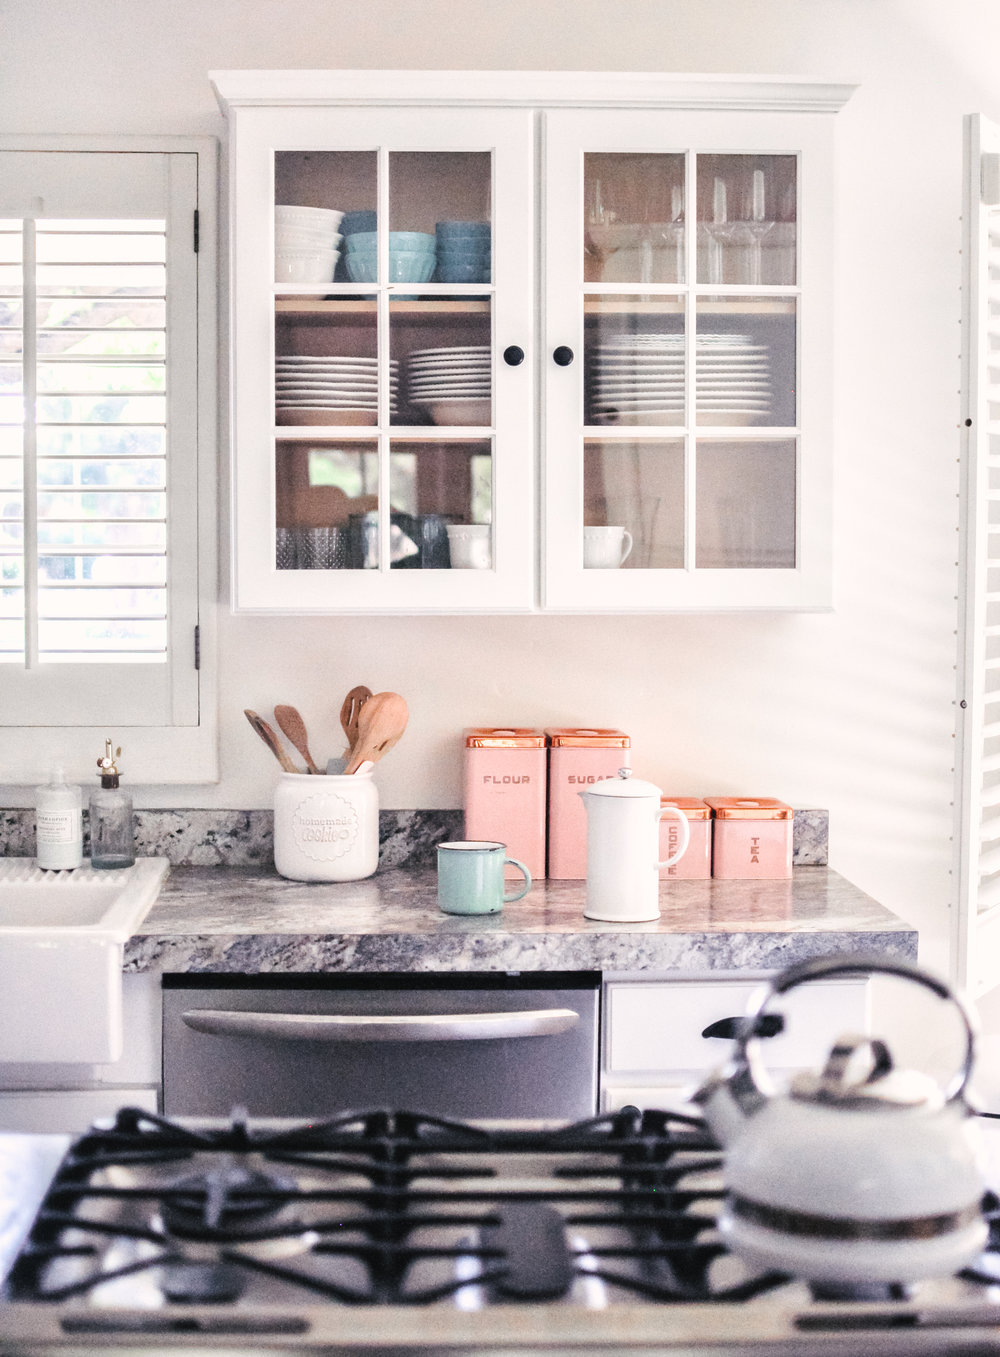 Black, Whtie and Pink Farmhouse Kitchen With Open Shelving